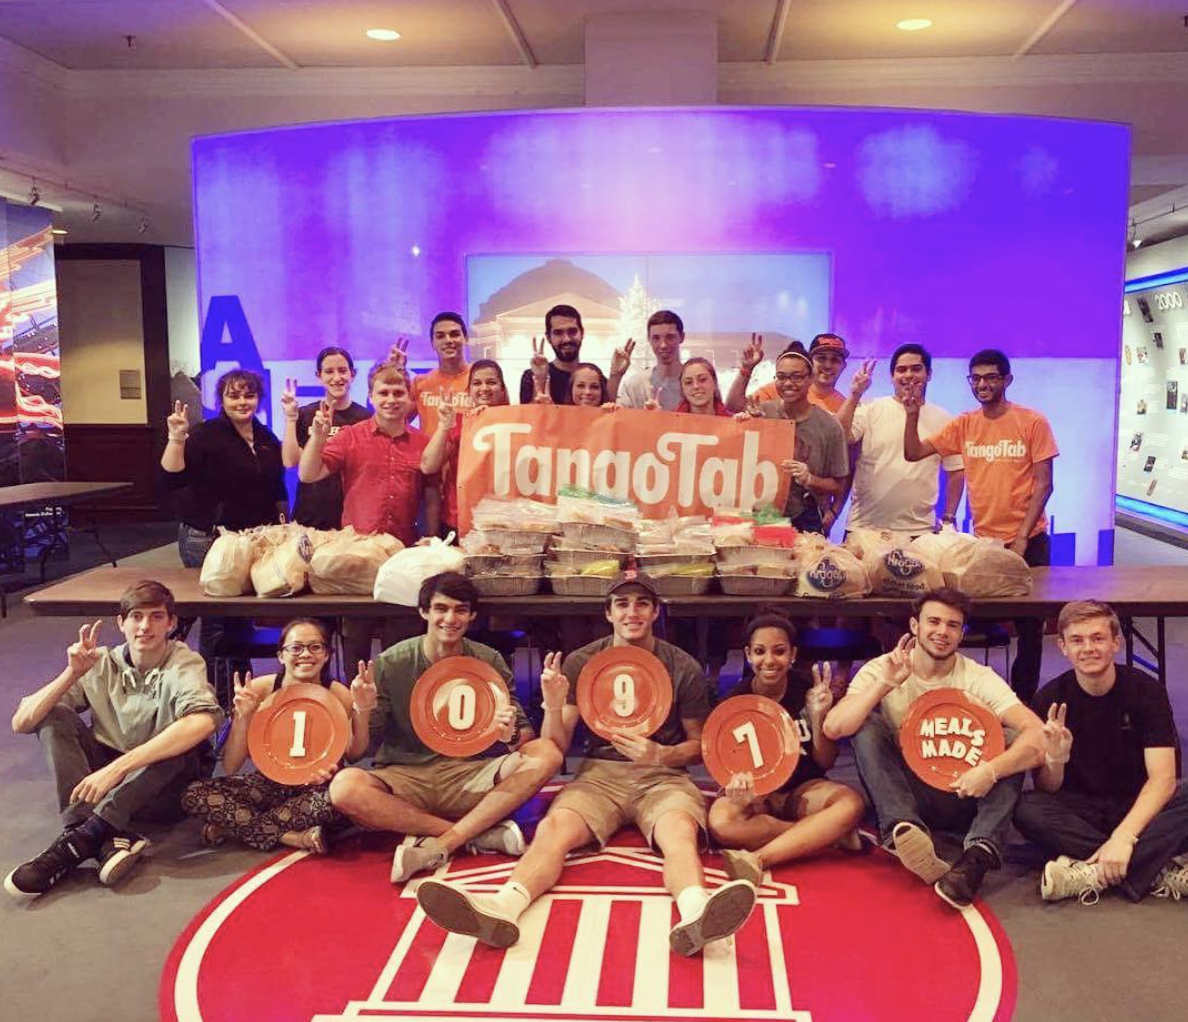 smu tangotab feed the city student philanthropy